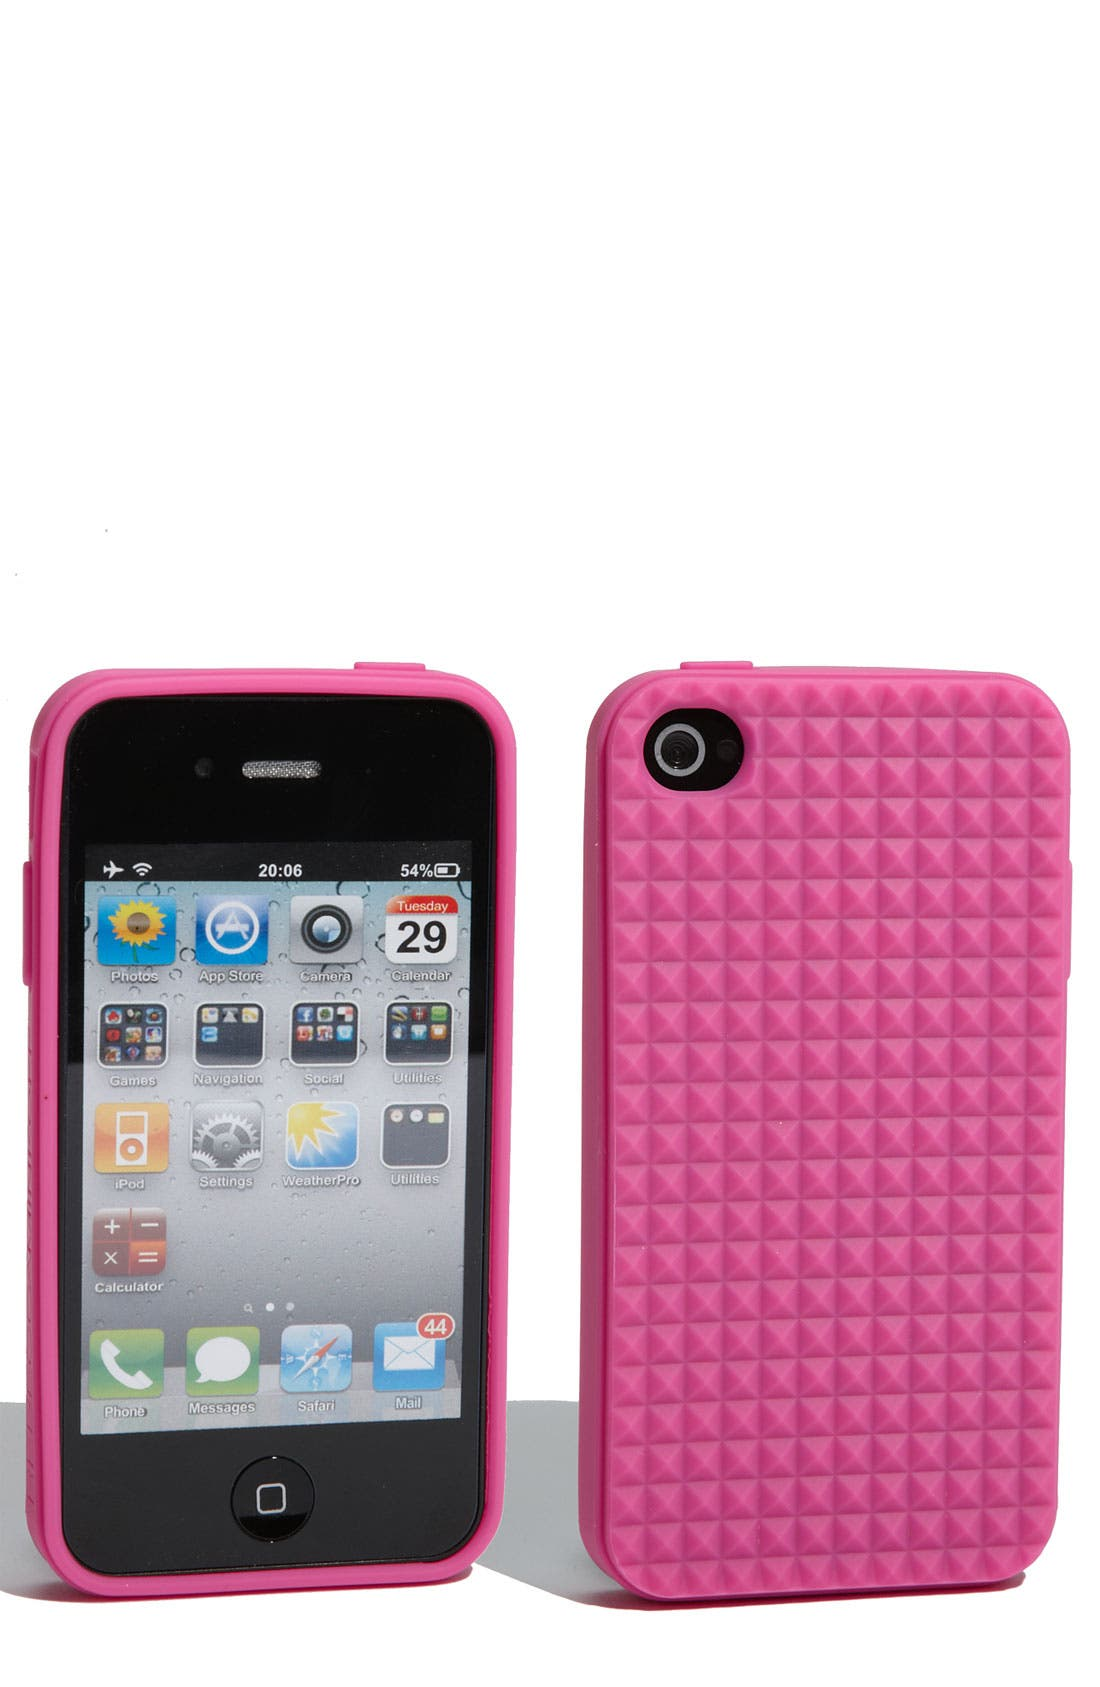 Main Image - Rebecca Minkoff 'Pyramid Stud' iPhone 4 & 4S Case